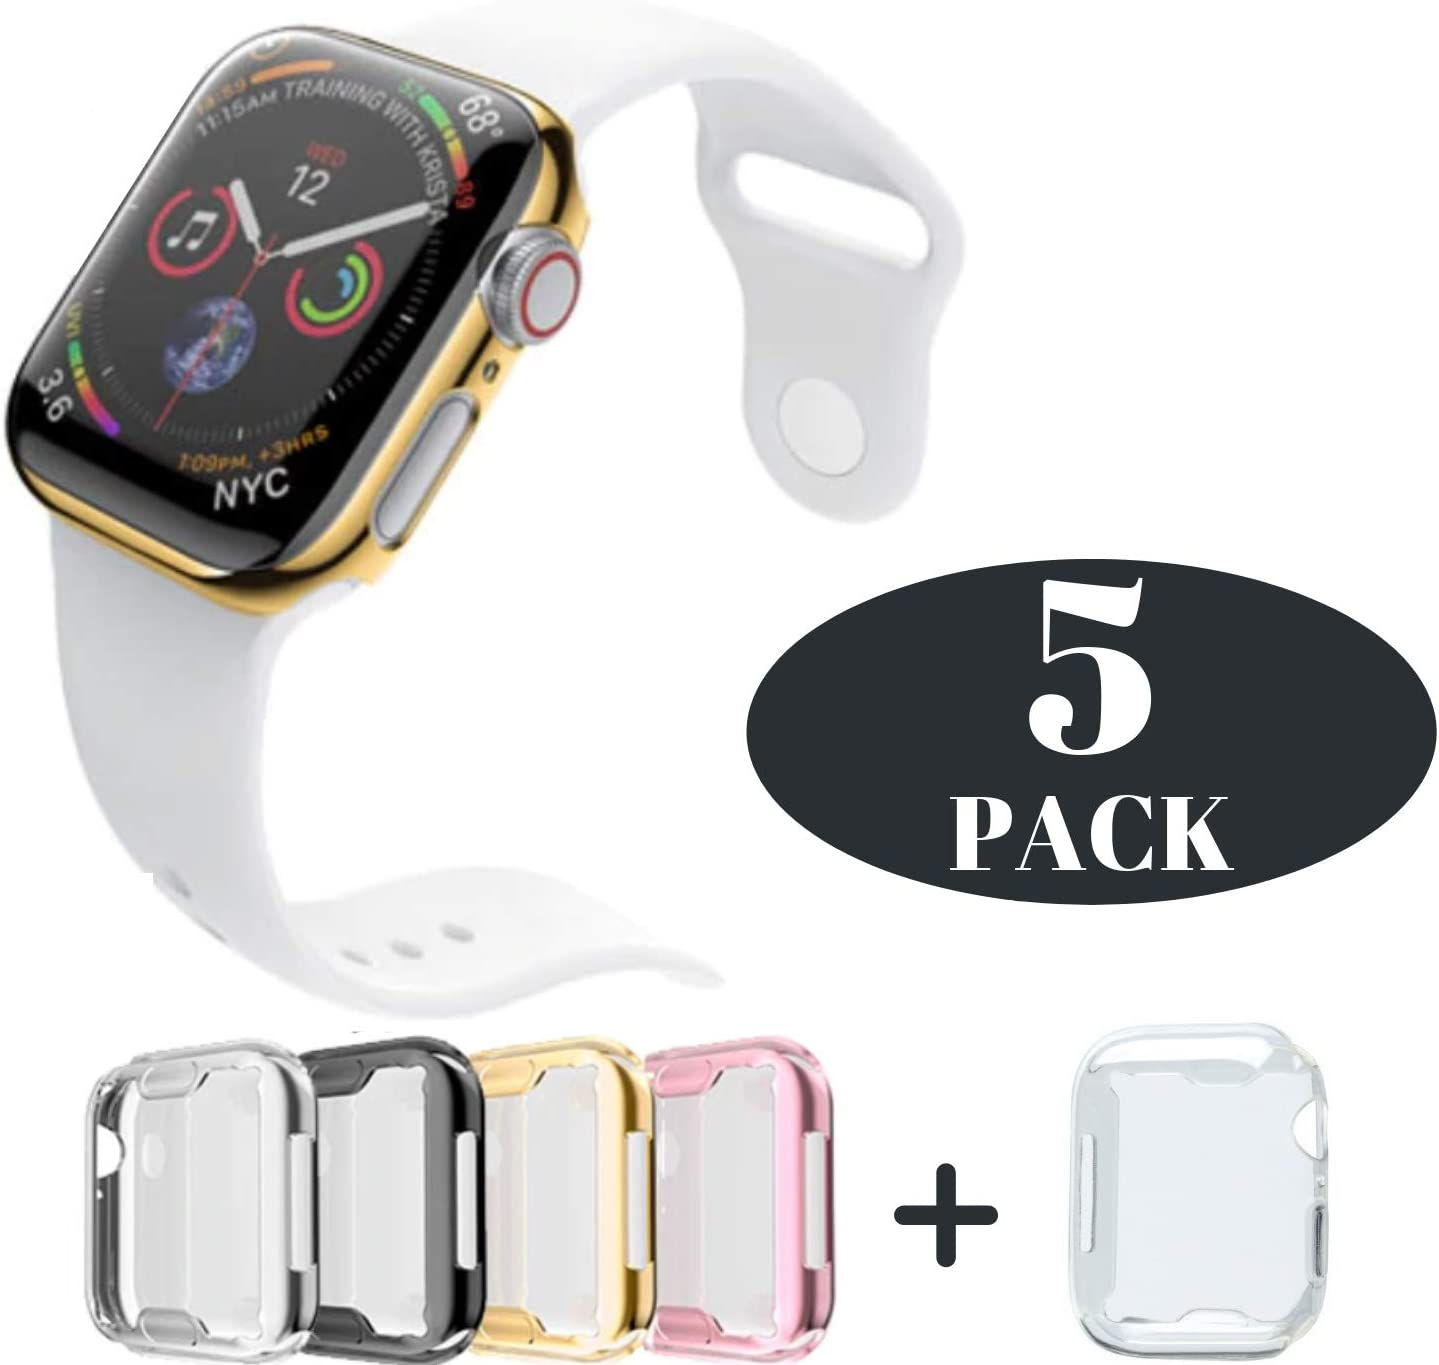 Case for Apple Watch 38m Series 3, 2 & 1 Built-in Screen Protector All Around Protective Cover 4 Pack Bundle Black, Silver, Gold, & Rose Gold HD Clear Ultra-thin 38mm iWatch 3, iWatch 2, and Apple iWatch 1 Premium TPU Cover by iV Industry [4 PACK - 38mm Series 3 / 2 / 1]